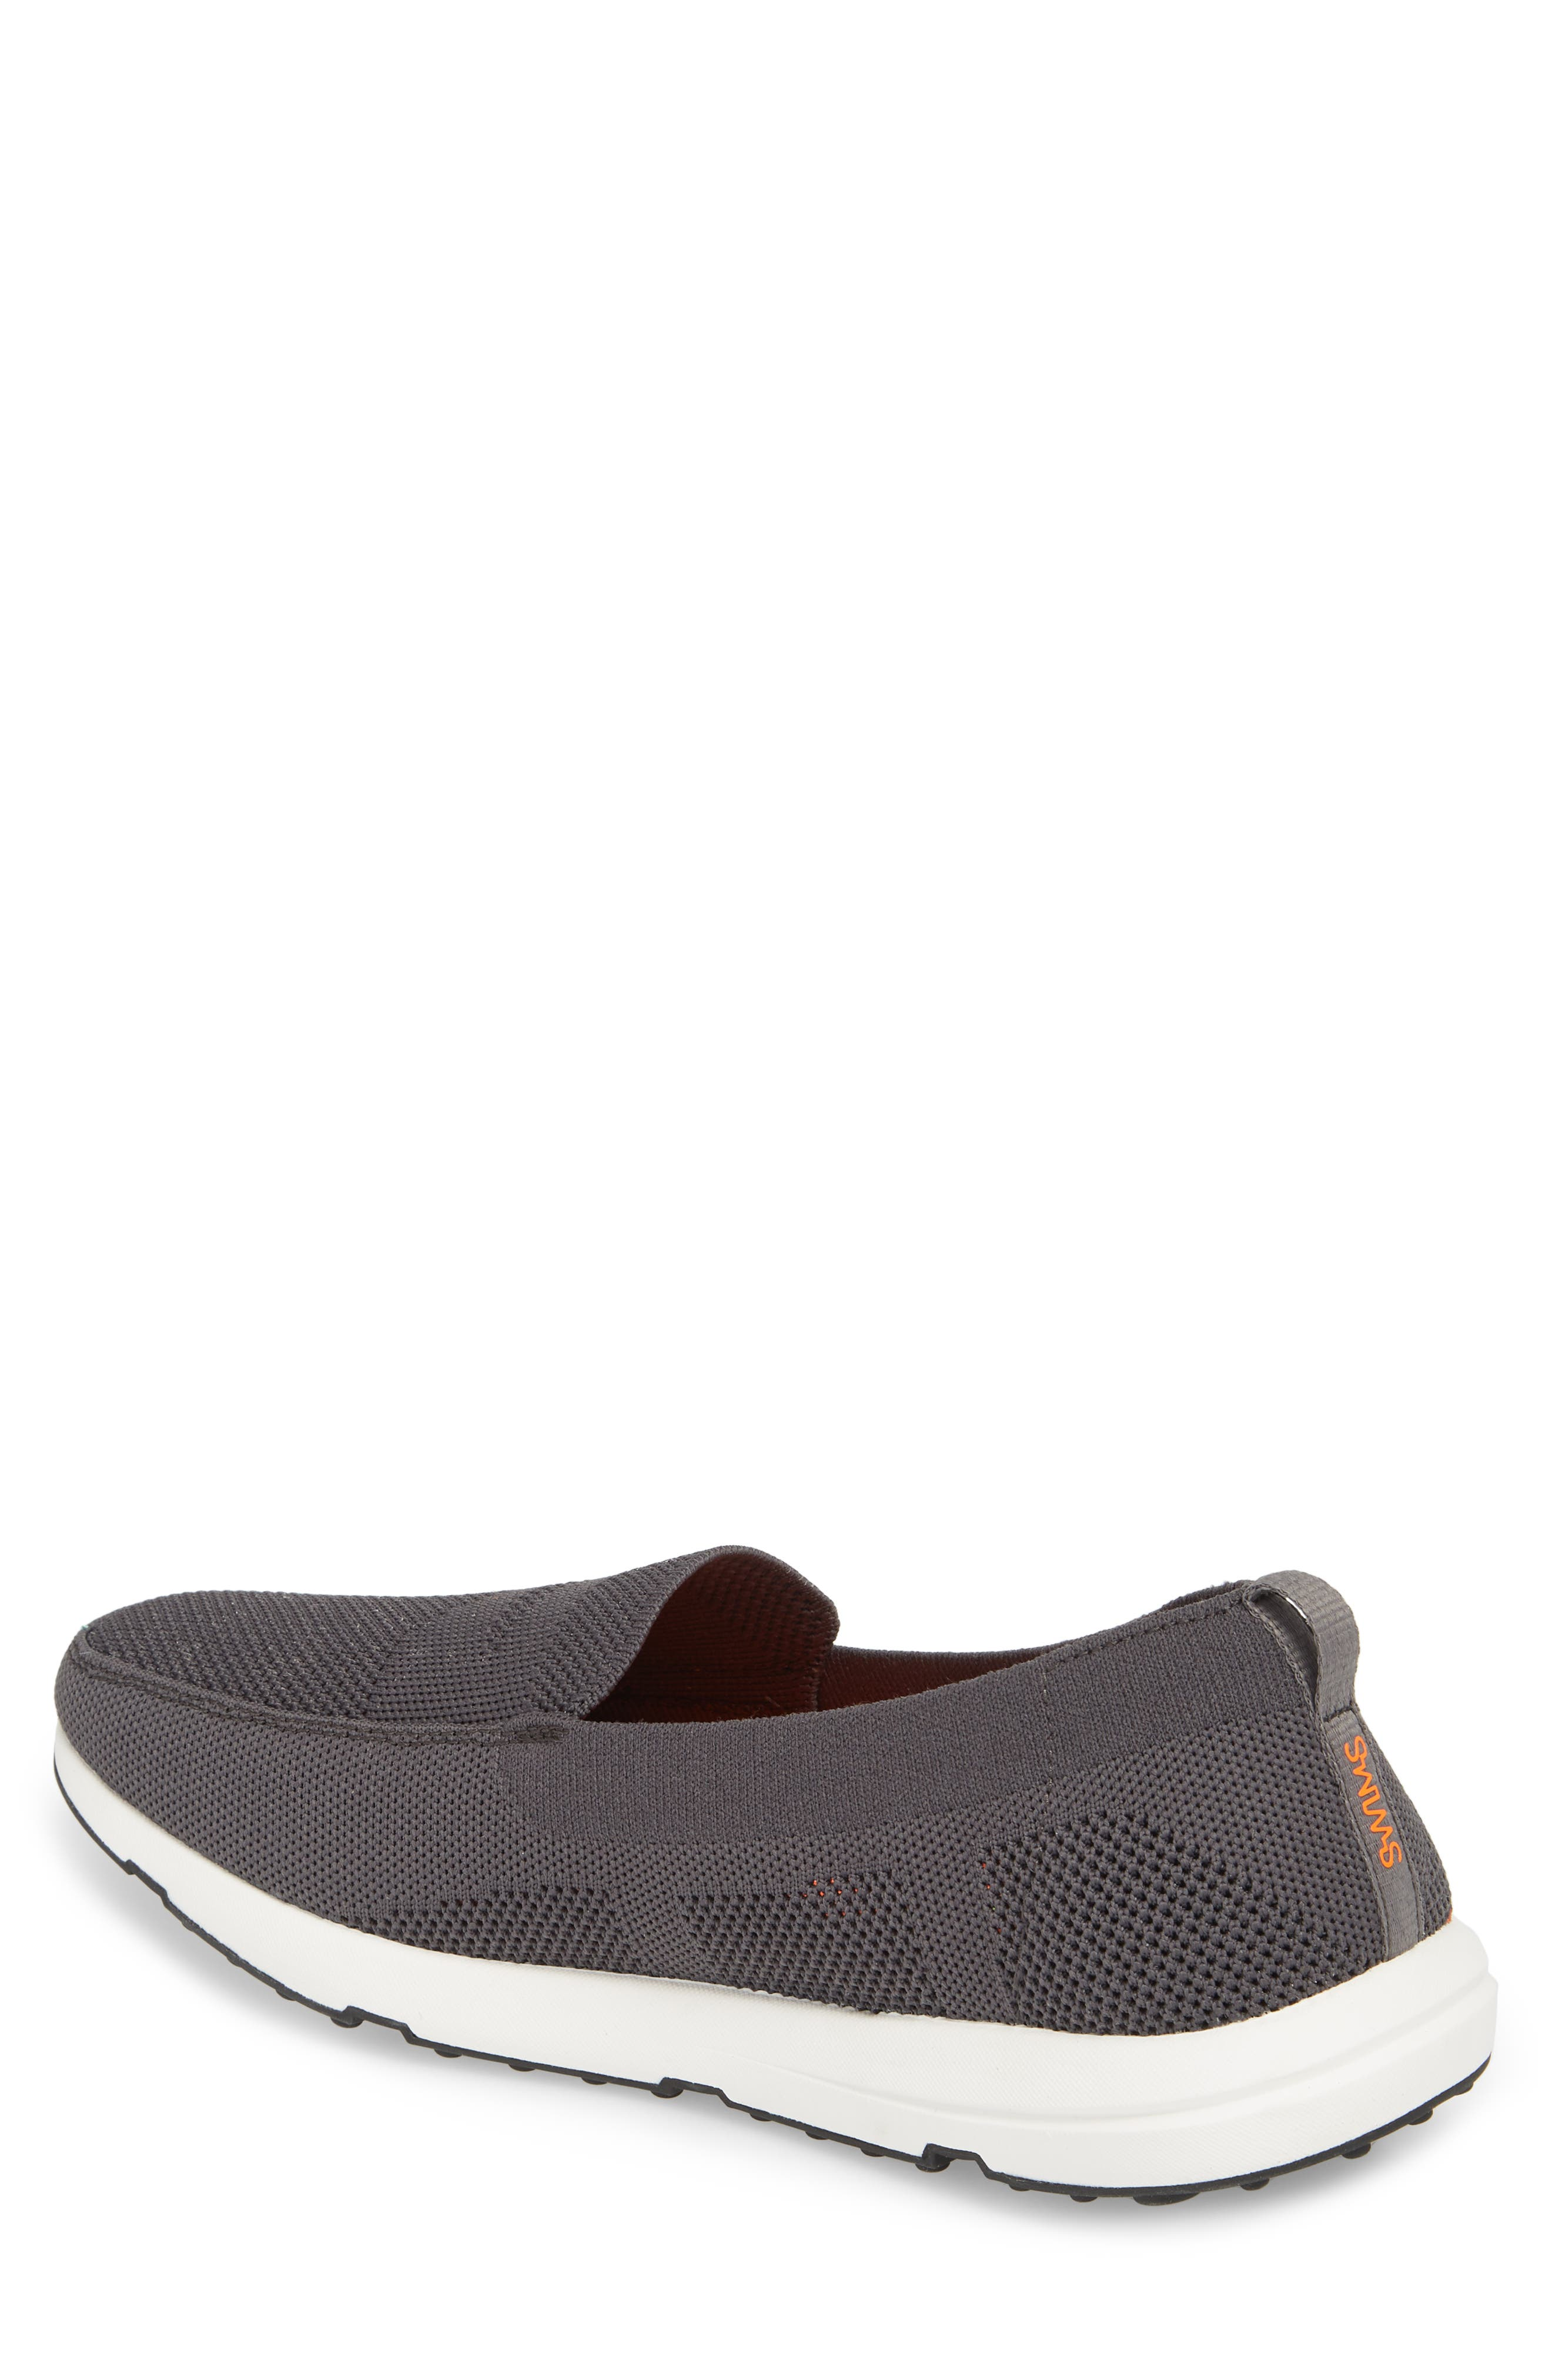 SWIMS,                             Breeze Leap Knit Penny Slip-On,                             Alternate thumbnail 2, color,                             020